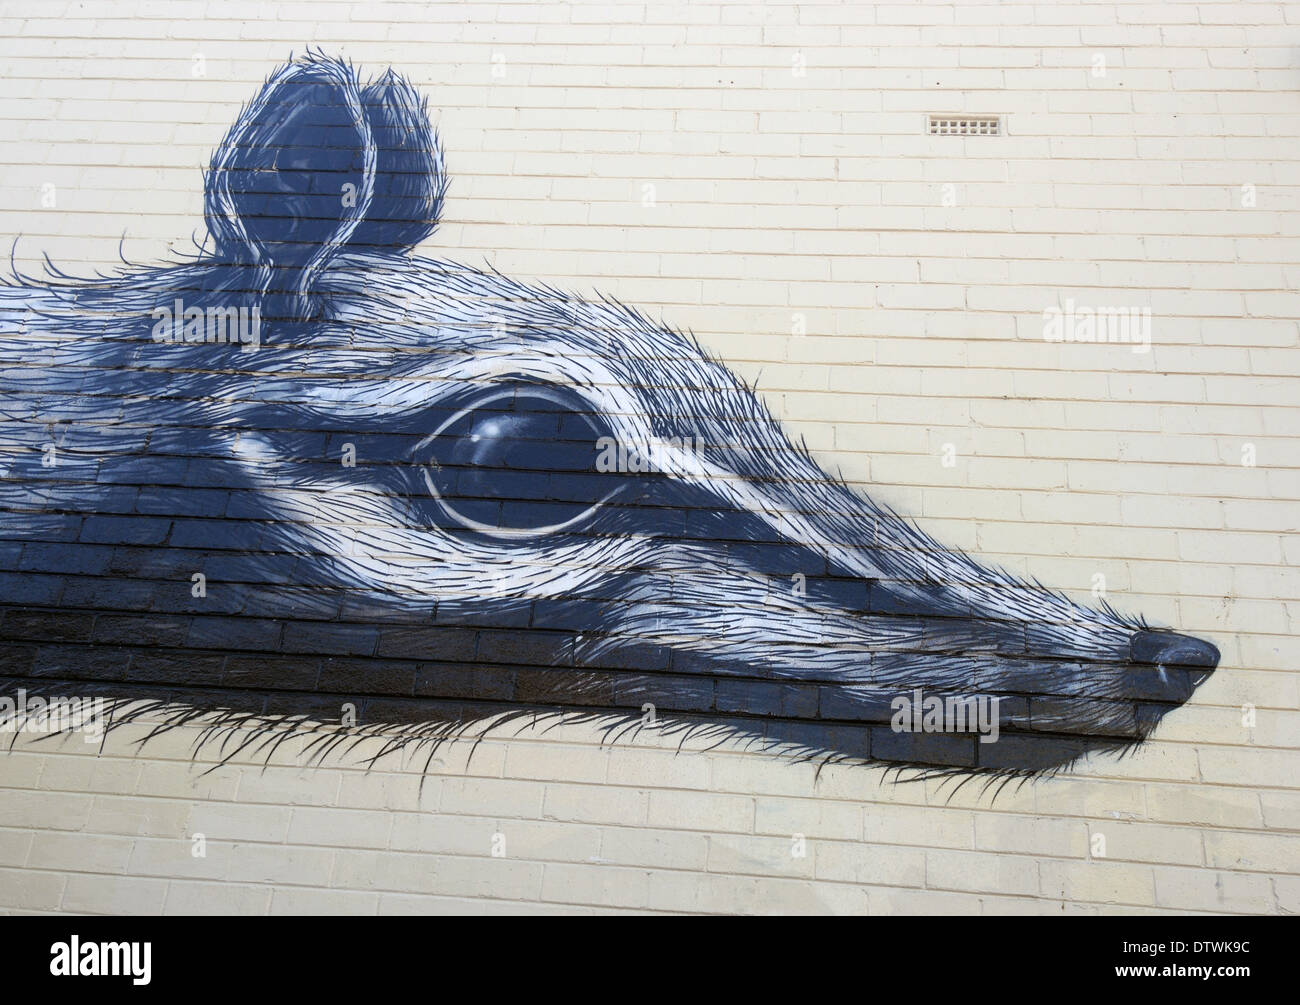 Numbat painted on wall, Fremantle, Perth, Western Australia. No PR - Stock Image